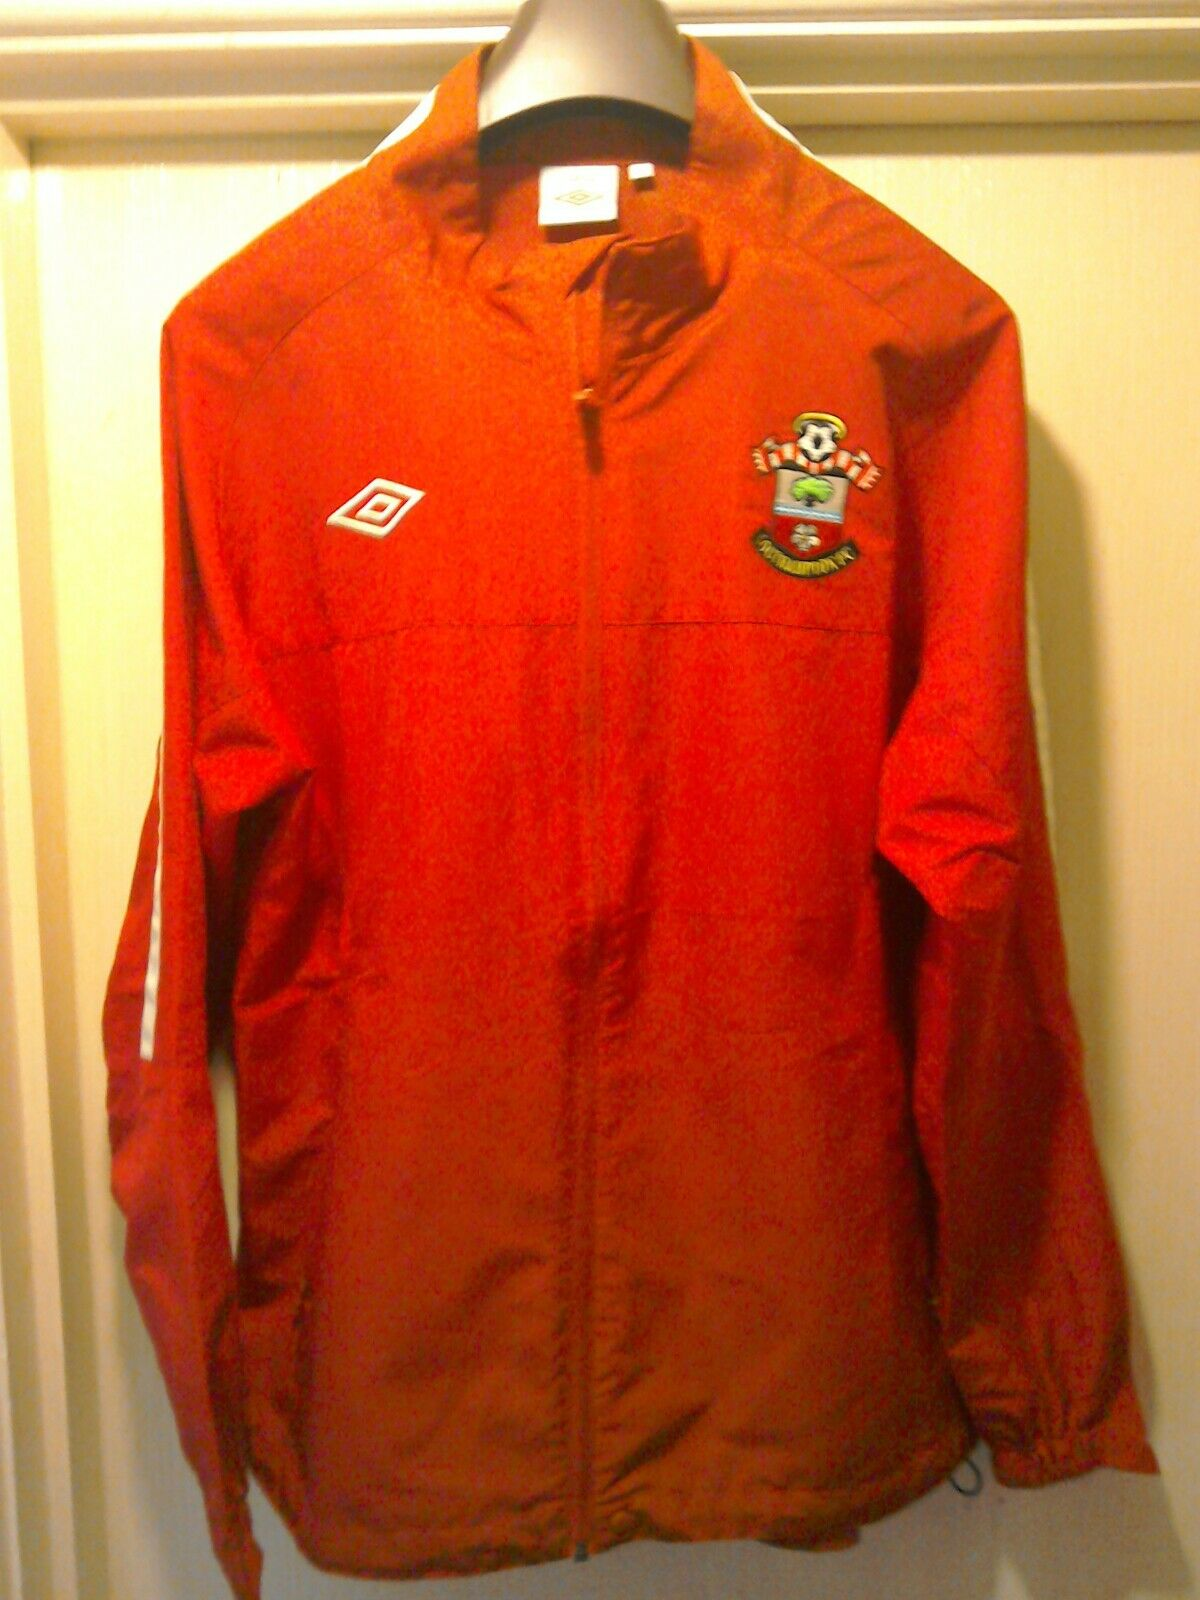 Southampton fc TailoROT by Umbro lightweight Waterproof full zip top. Large